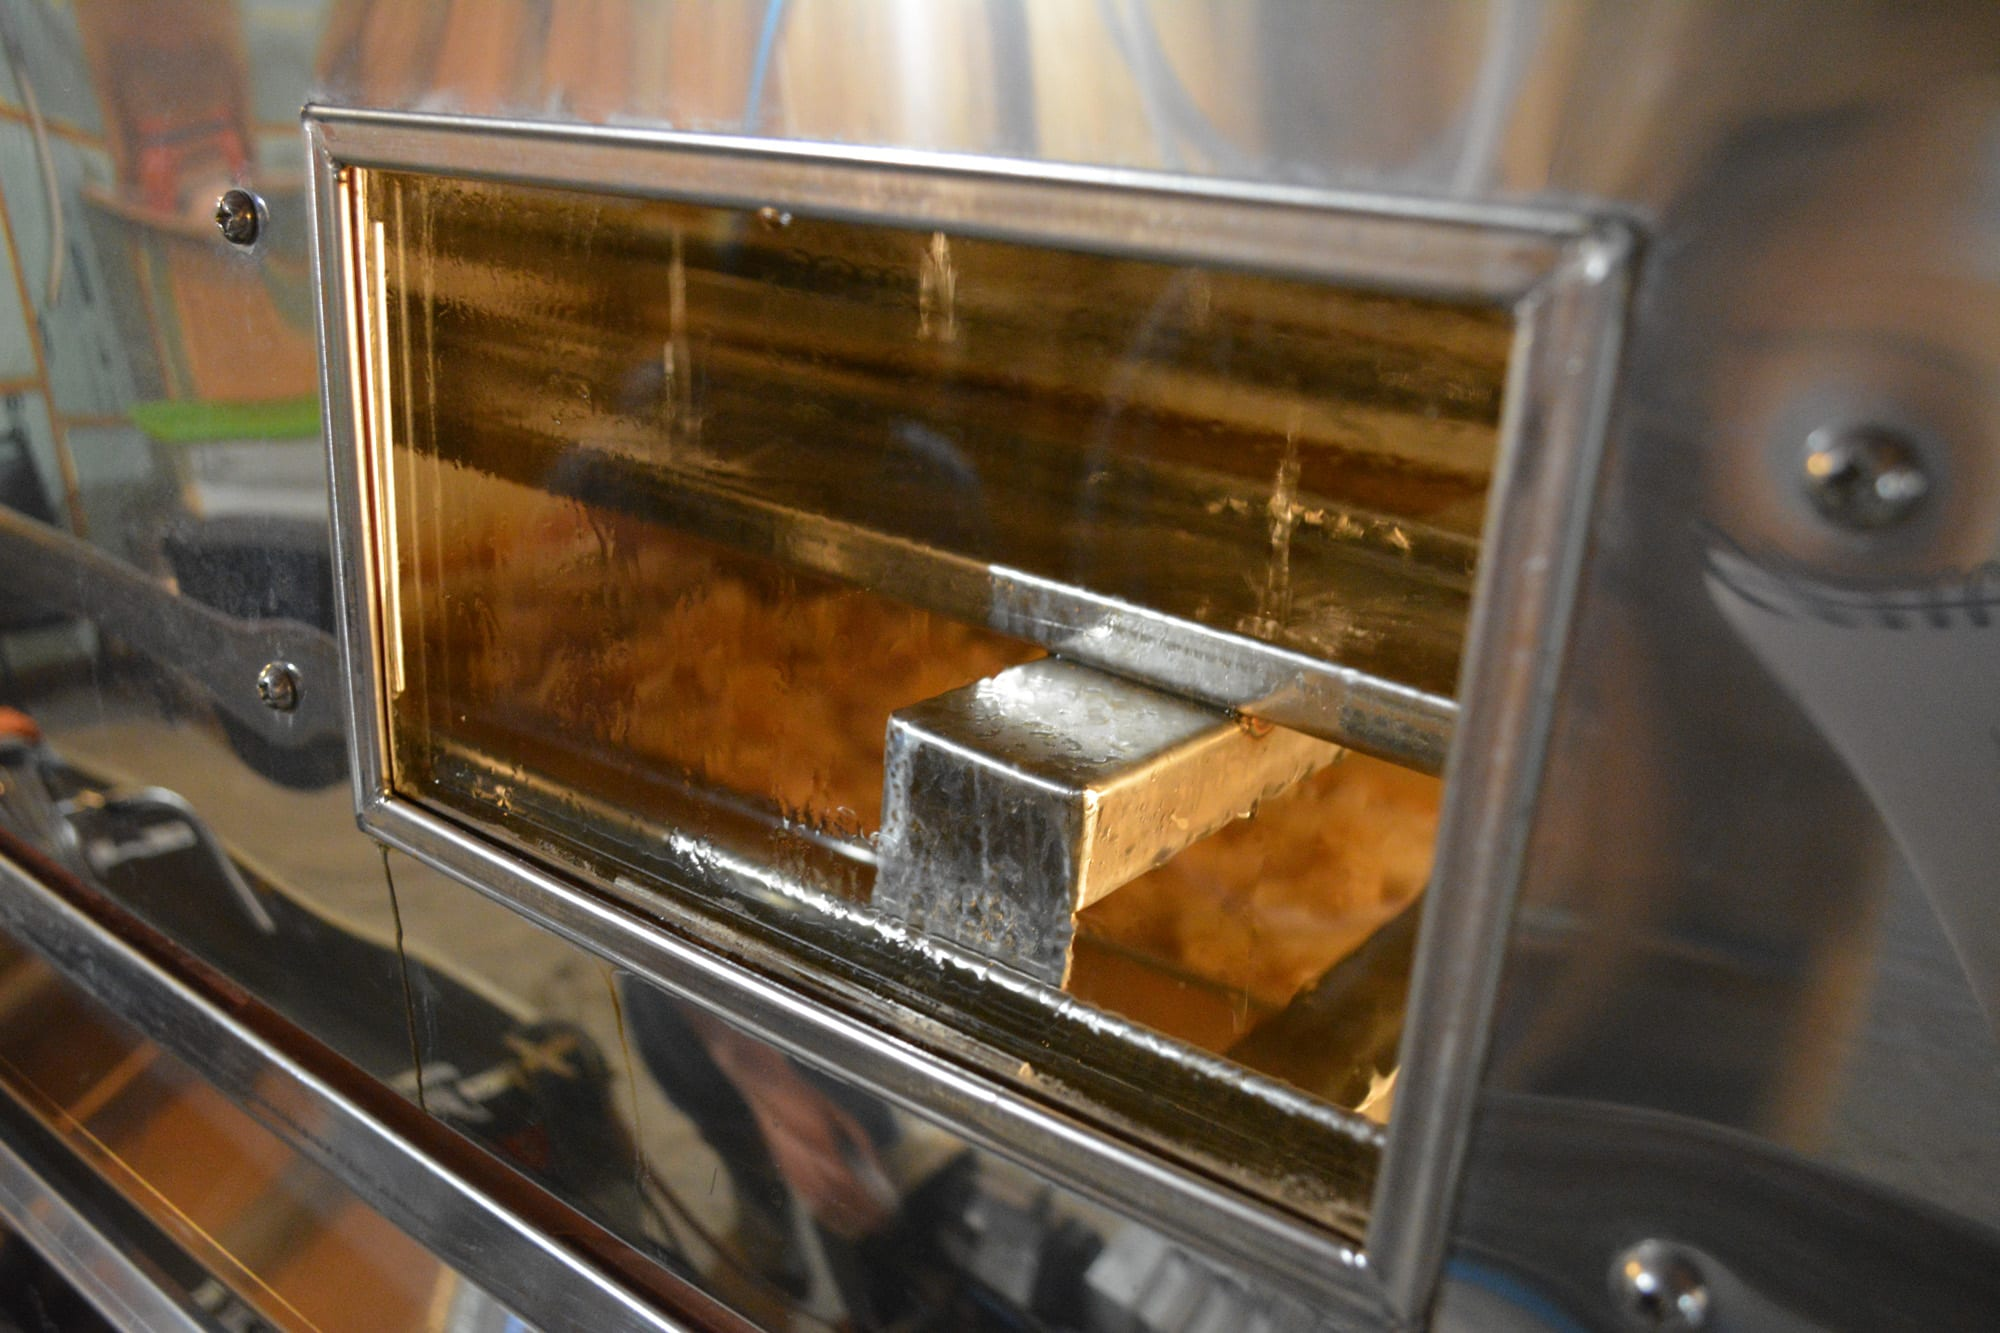 Inside the evaporator, a pan is filled with a layer of sap at least 1.5 inches deep and begins to boil. To be considered syrup — sap with a sugar content of 66 to 67 percent — the sap is heated about 7 degrees above the boiling point, which is roughly 219 degrees.